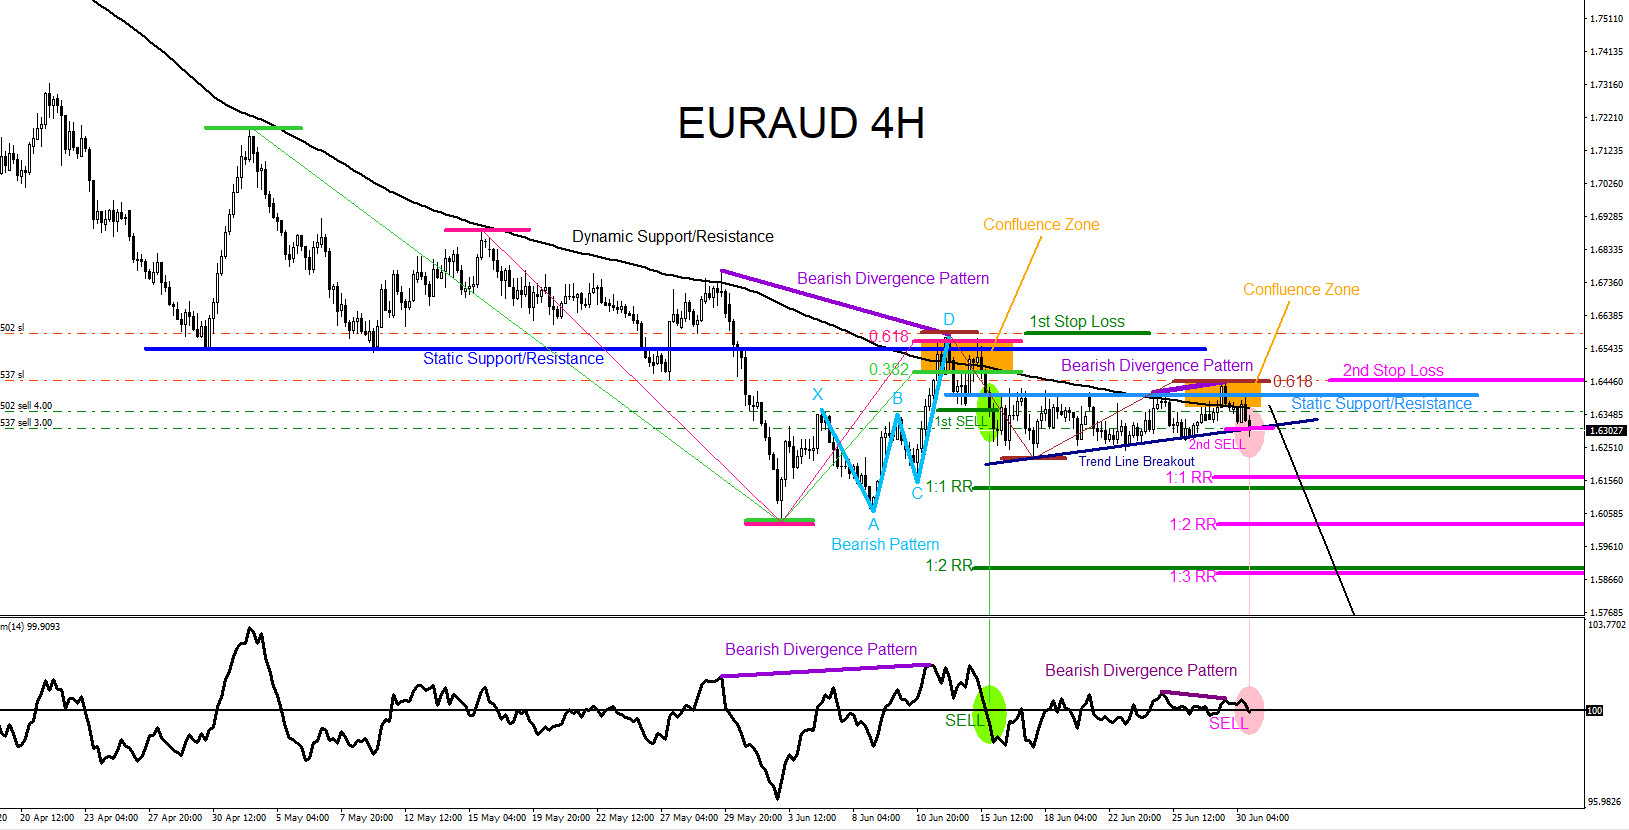 EURAUD : Remains Bearish Pushing for New Lows